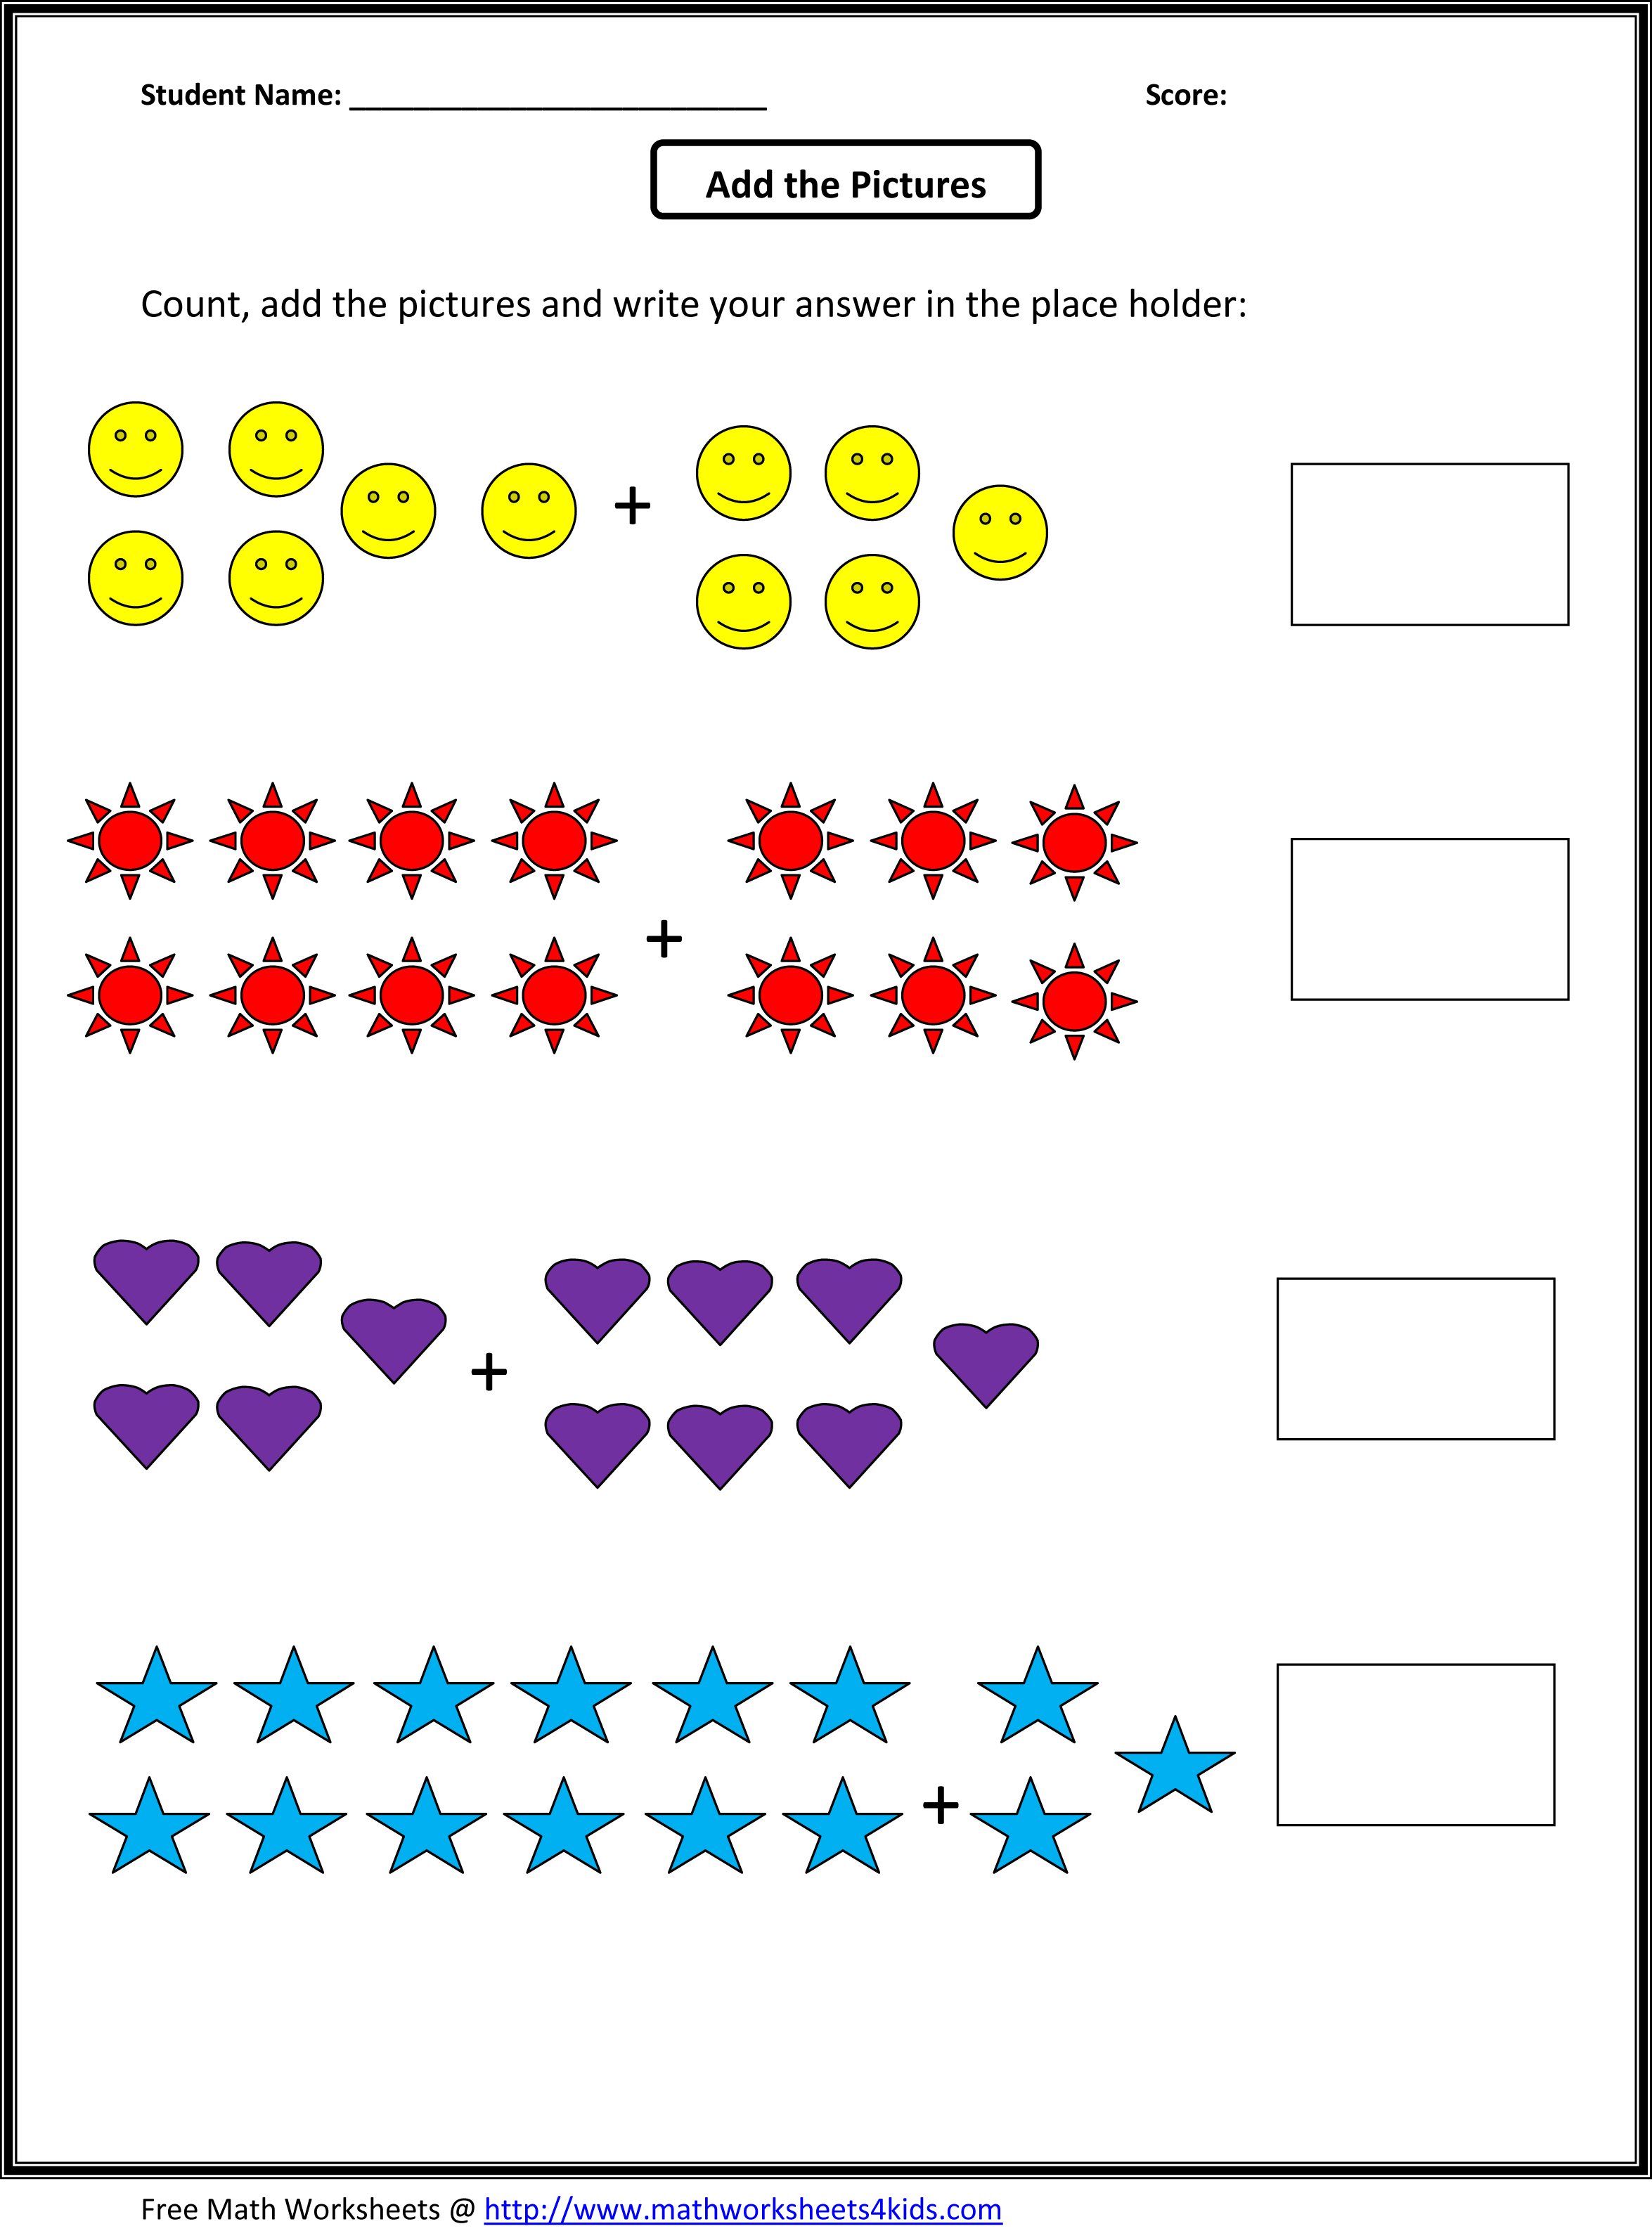 Proatmealus  Outstanding Grade  Maths Worksheet  Reocurent With Foxy Math Worksheets For St Grade Free  Reocurent With Beautiful Finding Number Patterns Worksheets Also My Family Worksheets For Kindergarten In Addition Skills Worksheets And English Grammar Free Worksheets As Well As Curved Mirrors Worksheet Additionally Worksheets On Motion From Reocurentcom With Proatmealus  Foxy Grade  Maths Worksheet  Reocurent With Beautiful Math Worksheets For St Grade Free  Reocurent And Outstanding Finding Number Patterns Worksheets Also My Family Worksheets For Kindergarten In Addition Skills Worksheets From Reocurentcom